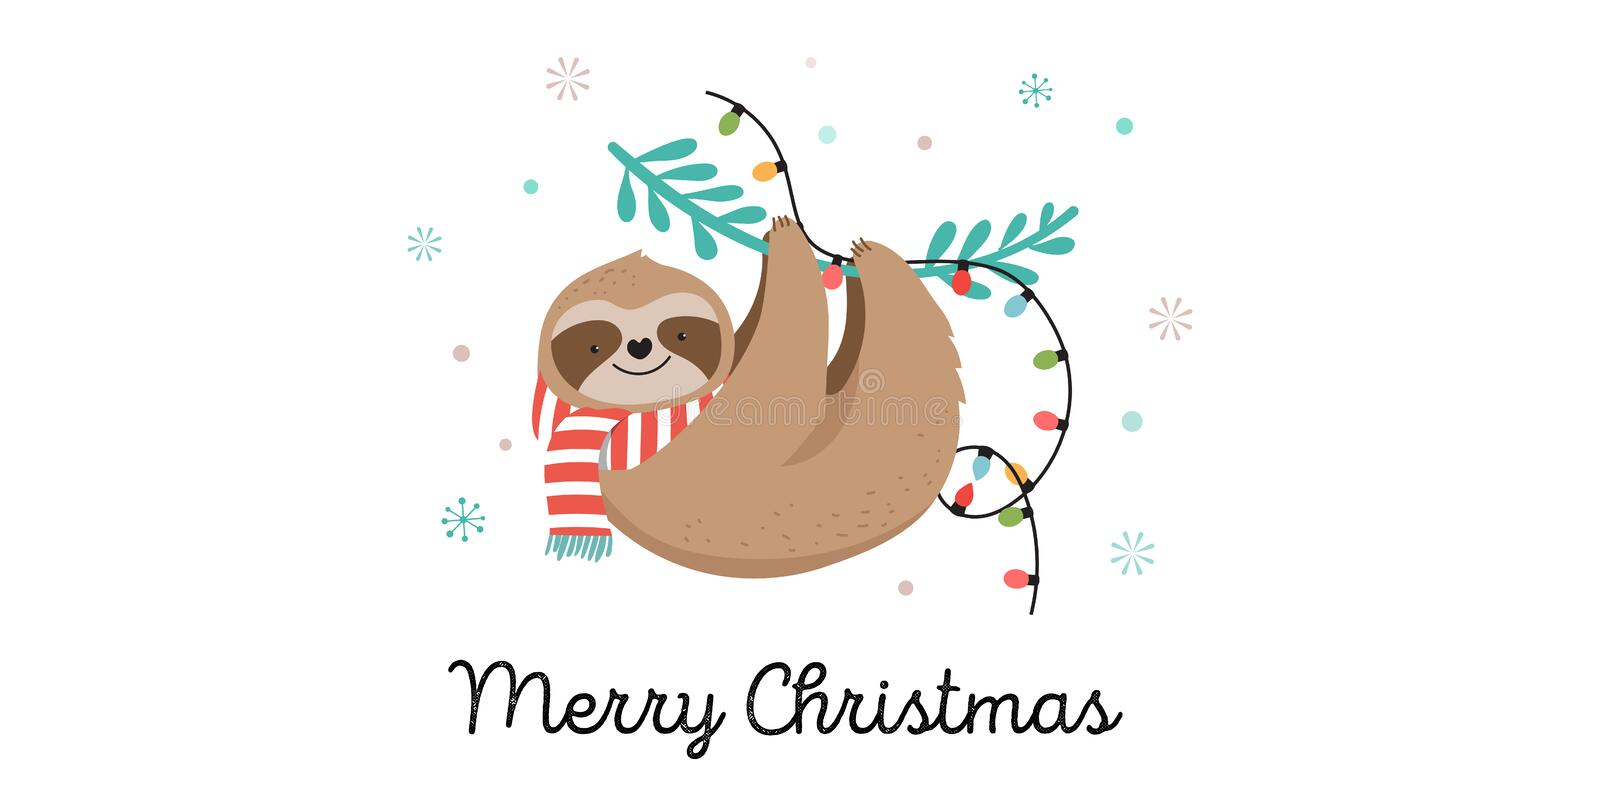 Cute sloths, funny Christmas illustrations with Santa Claus costumes, hat and scarfs, greeting cards set, banner. Cute lazy sloths, funny Merry Christmas stock illustration